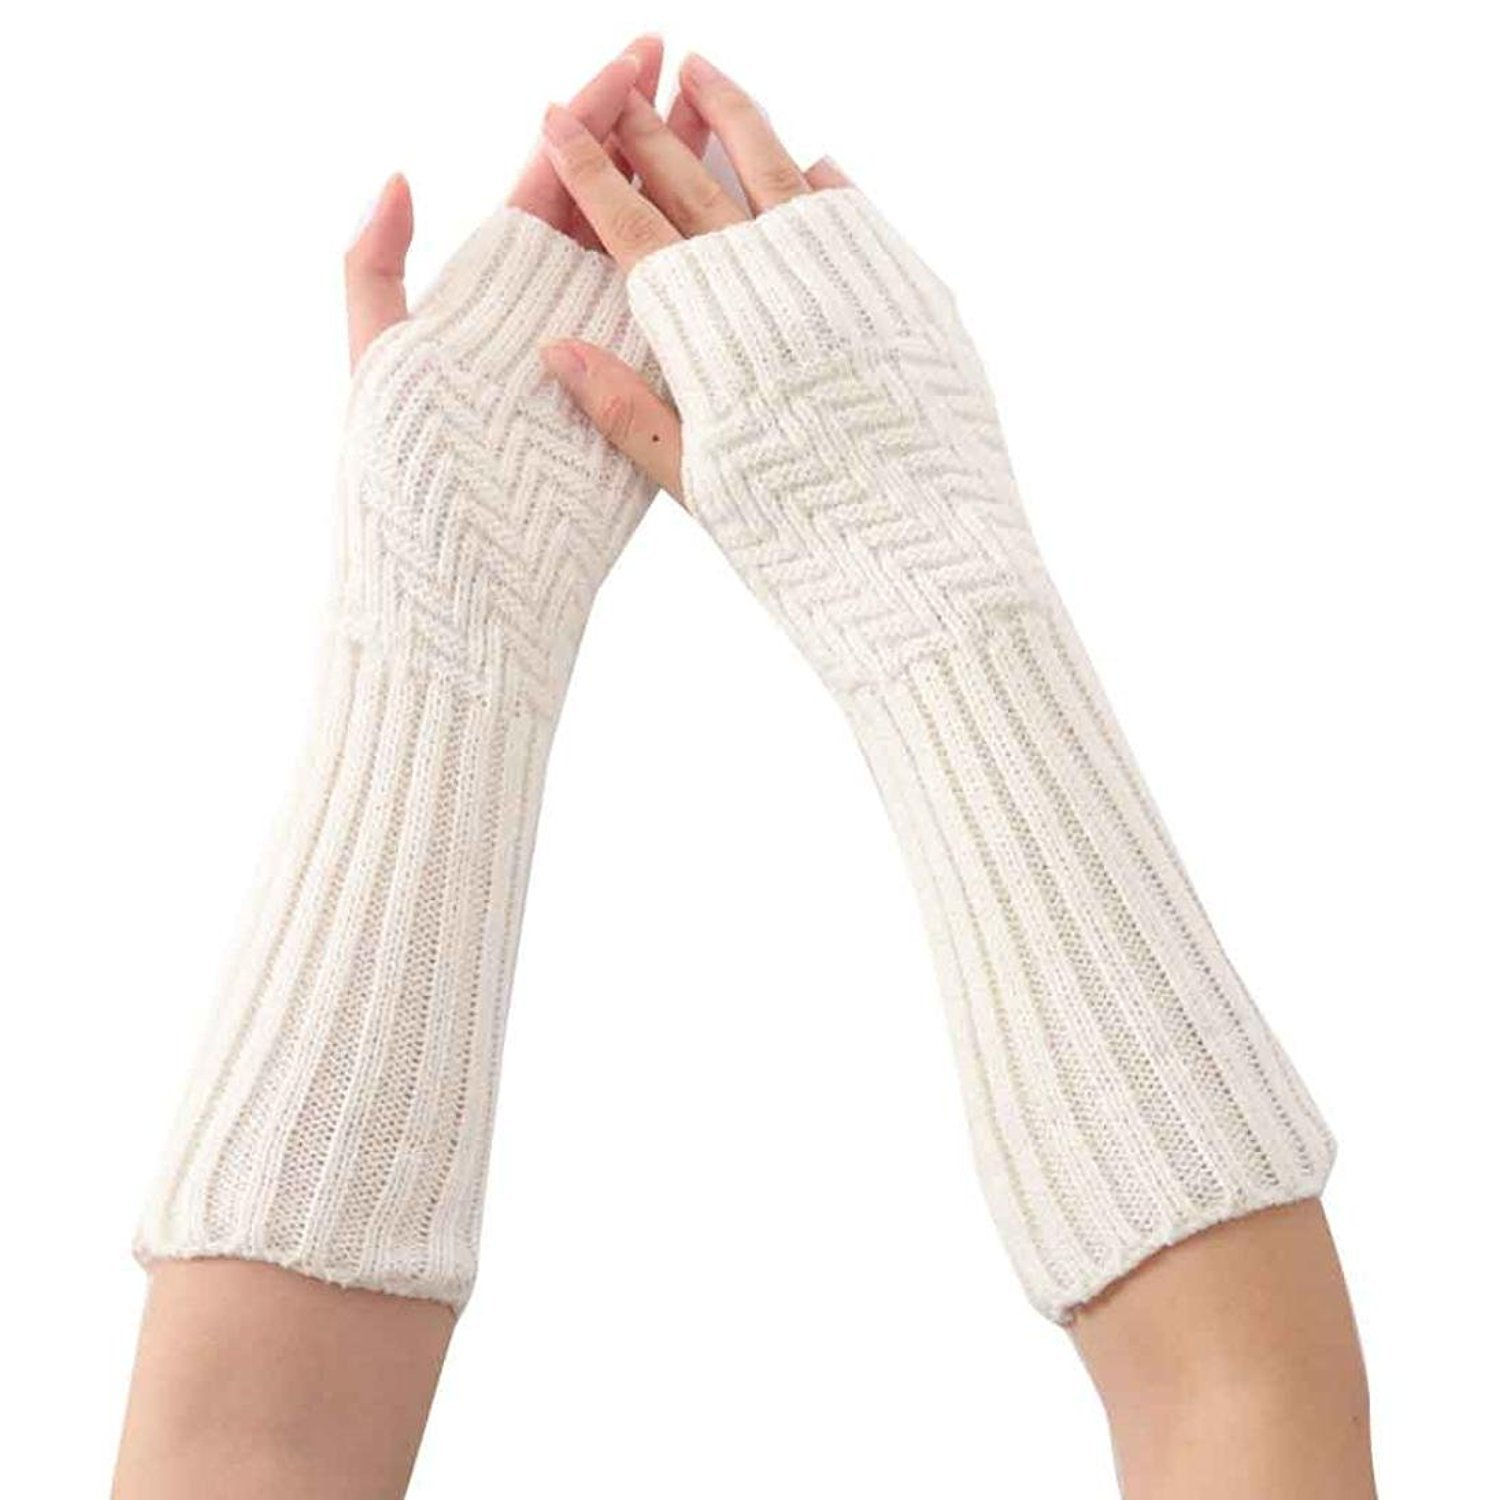 Kingko® Fashion Women's Serpentine Knitted Arm Sleeve Fingerless Winter Gloves Soft Warm Mitten